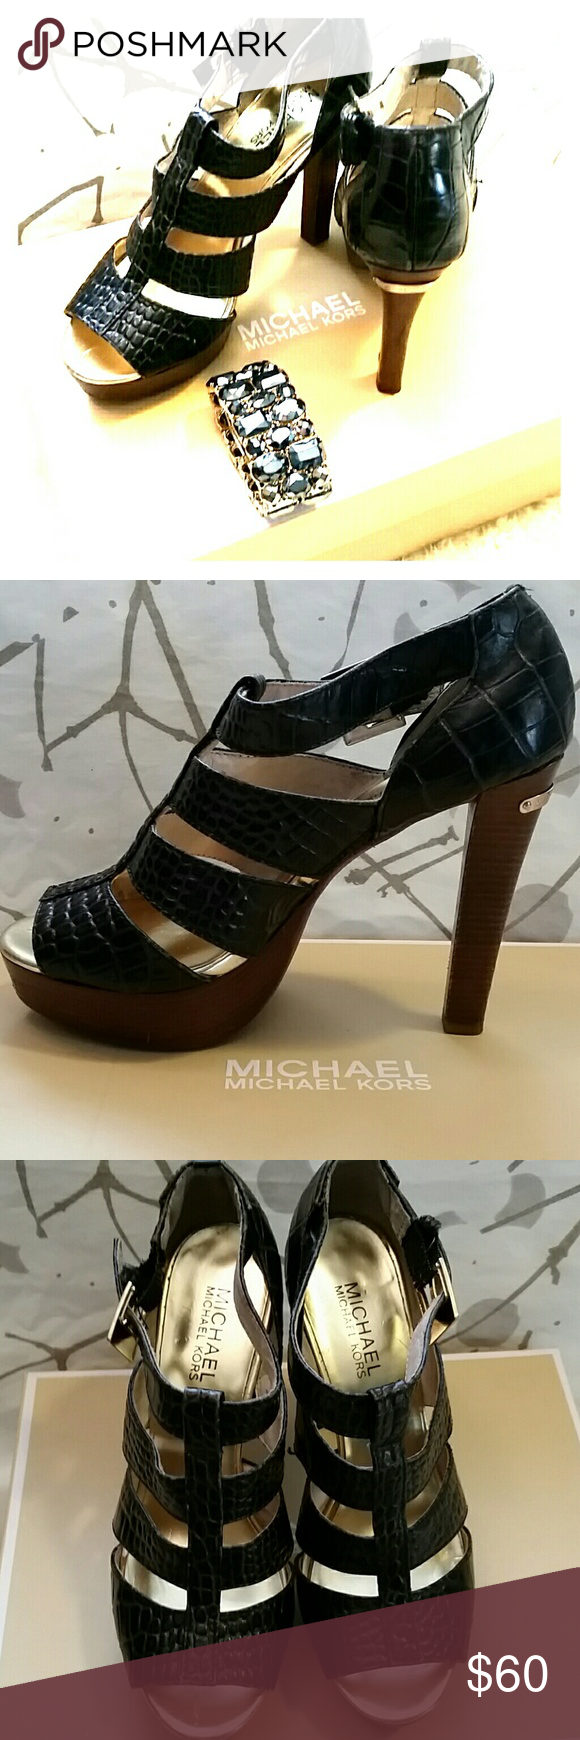 Black Michael Kors heels Black 3 inch Michael Kors heels, in nice condition, very comfortable fit MICHAEL Michael Kors Shoes Heels